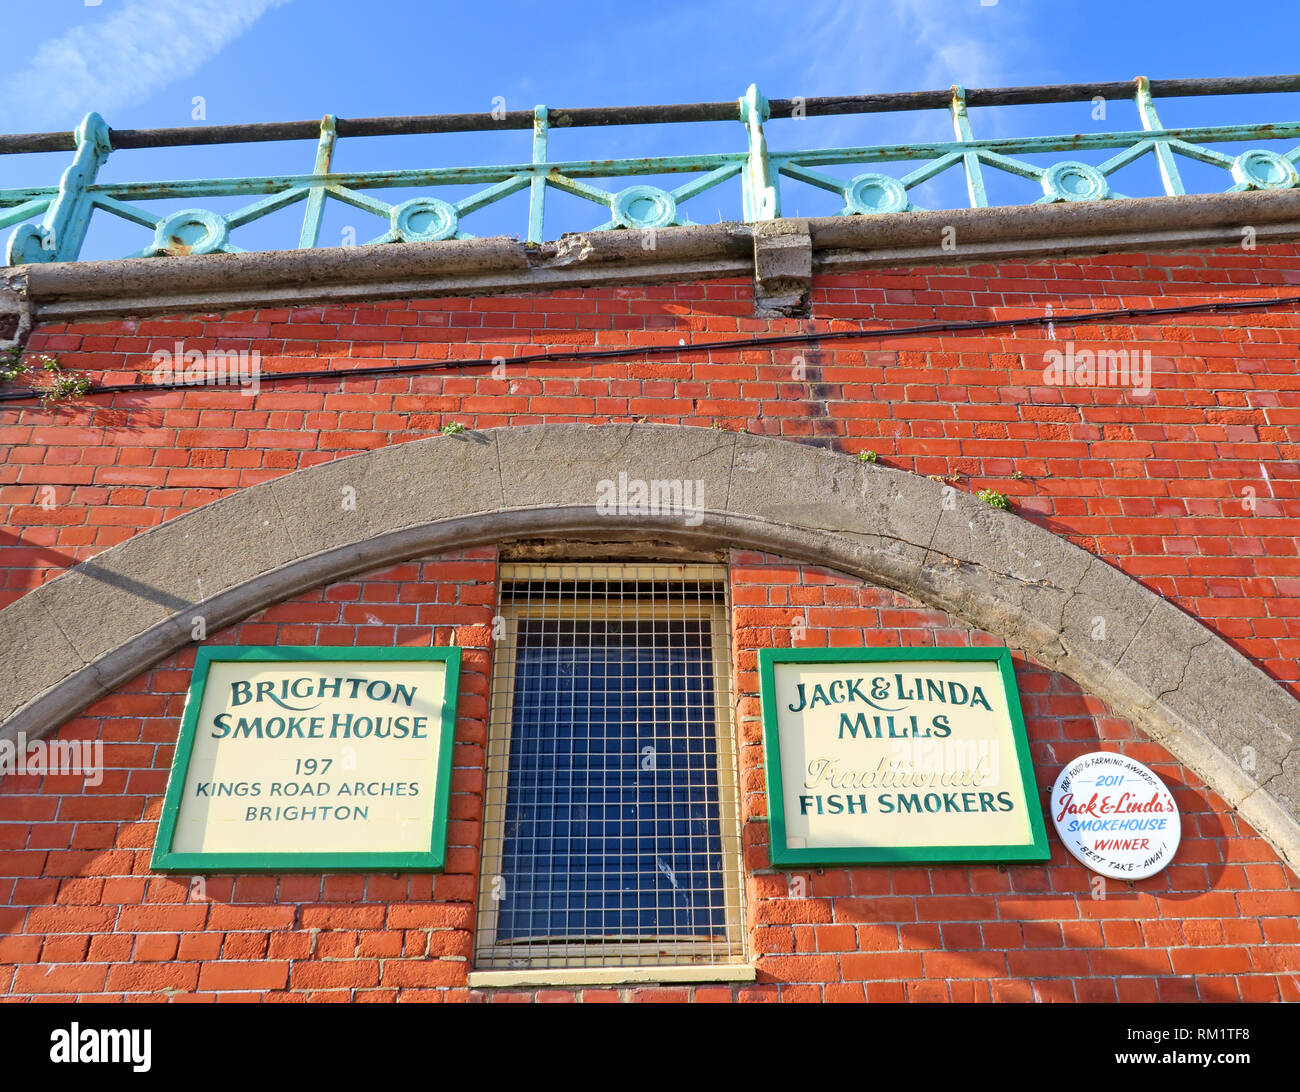 The Brighton Smokehouse, 197 Kings Road  Arches Brighton, Jack Linda Mills traditional Fish Smokers, Brighton city, UK - Stock Image